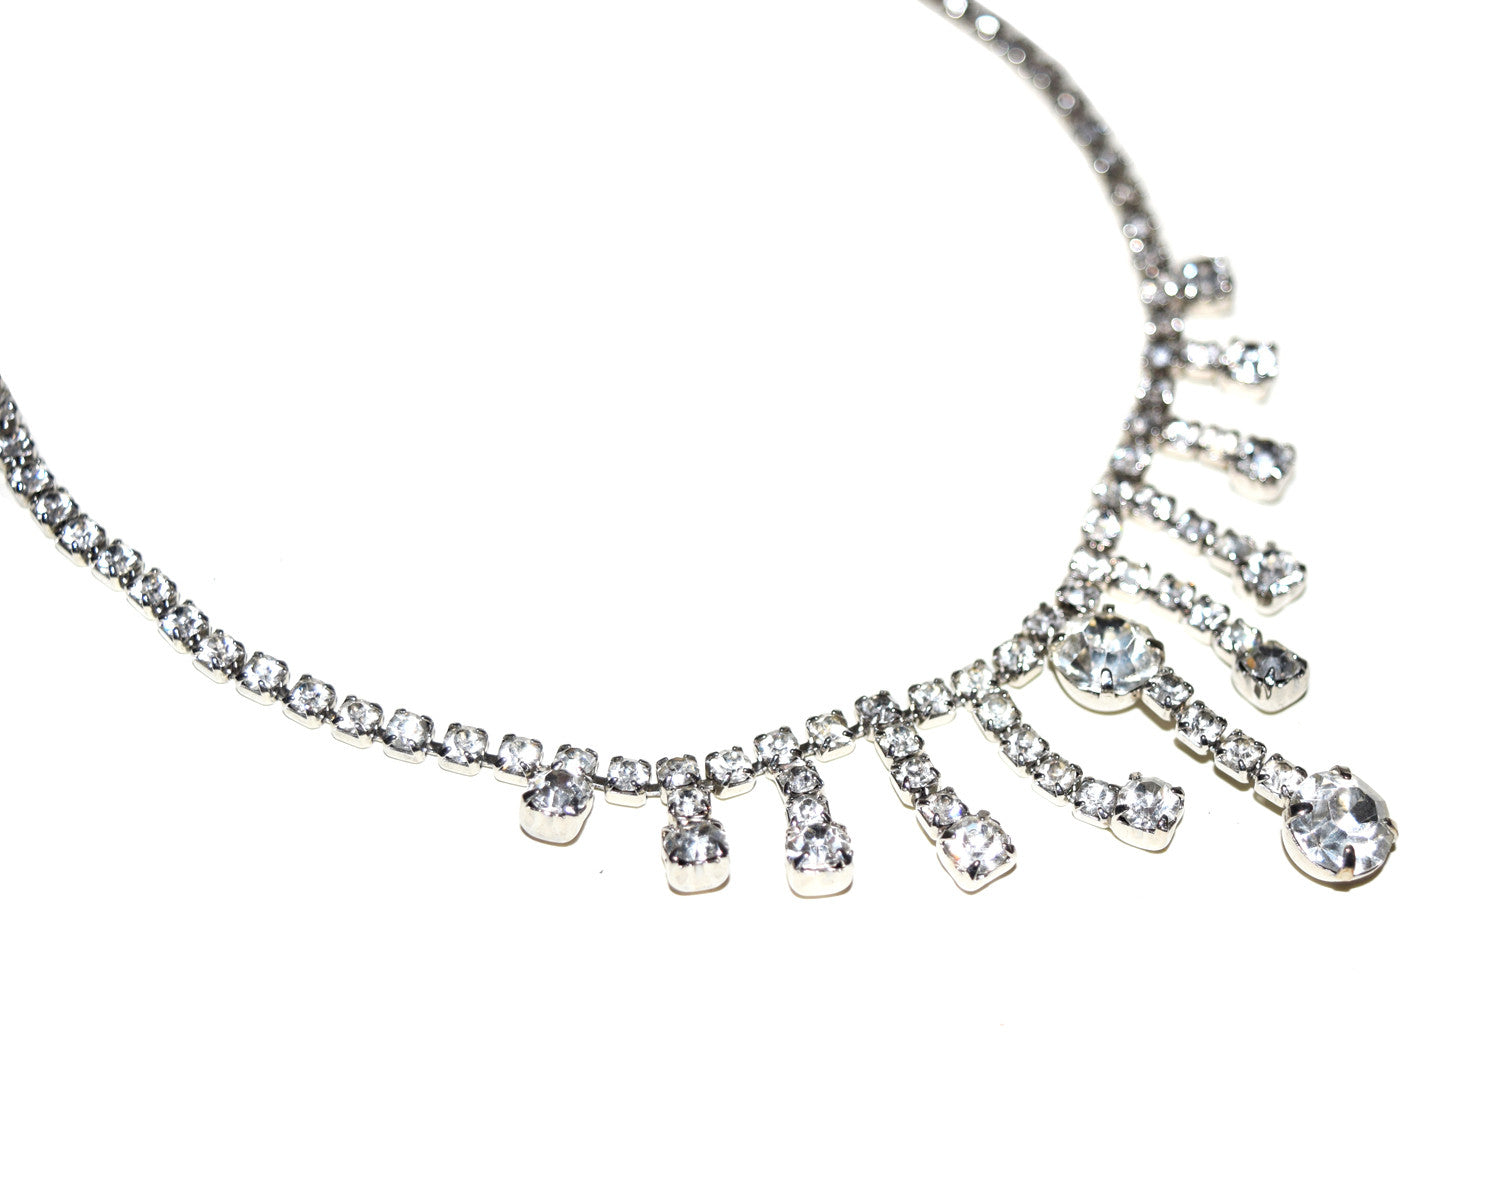 Vintage 1950s Rhinestone Necklace